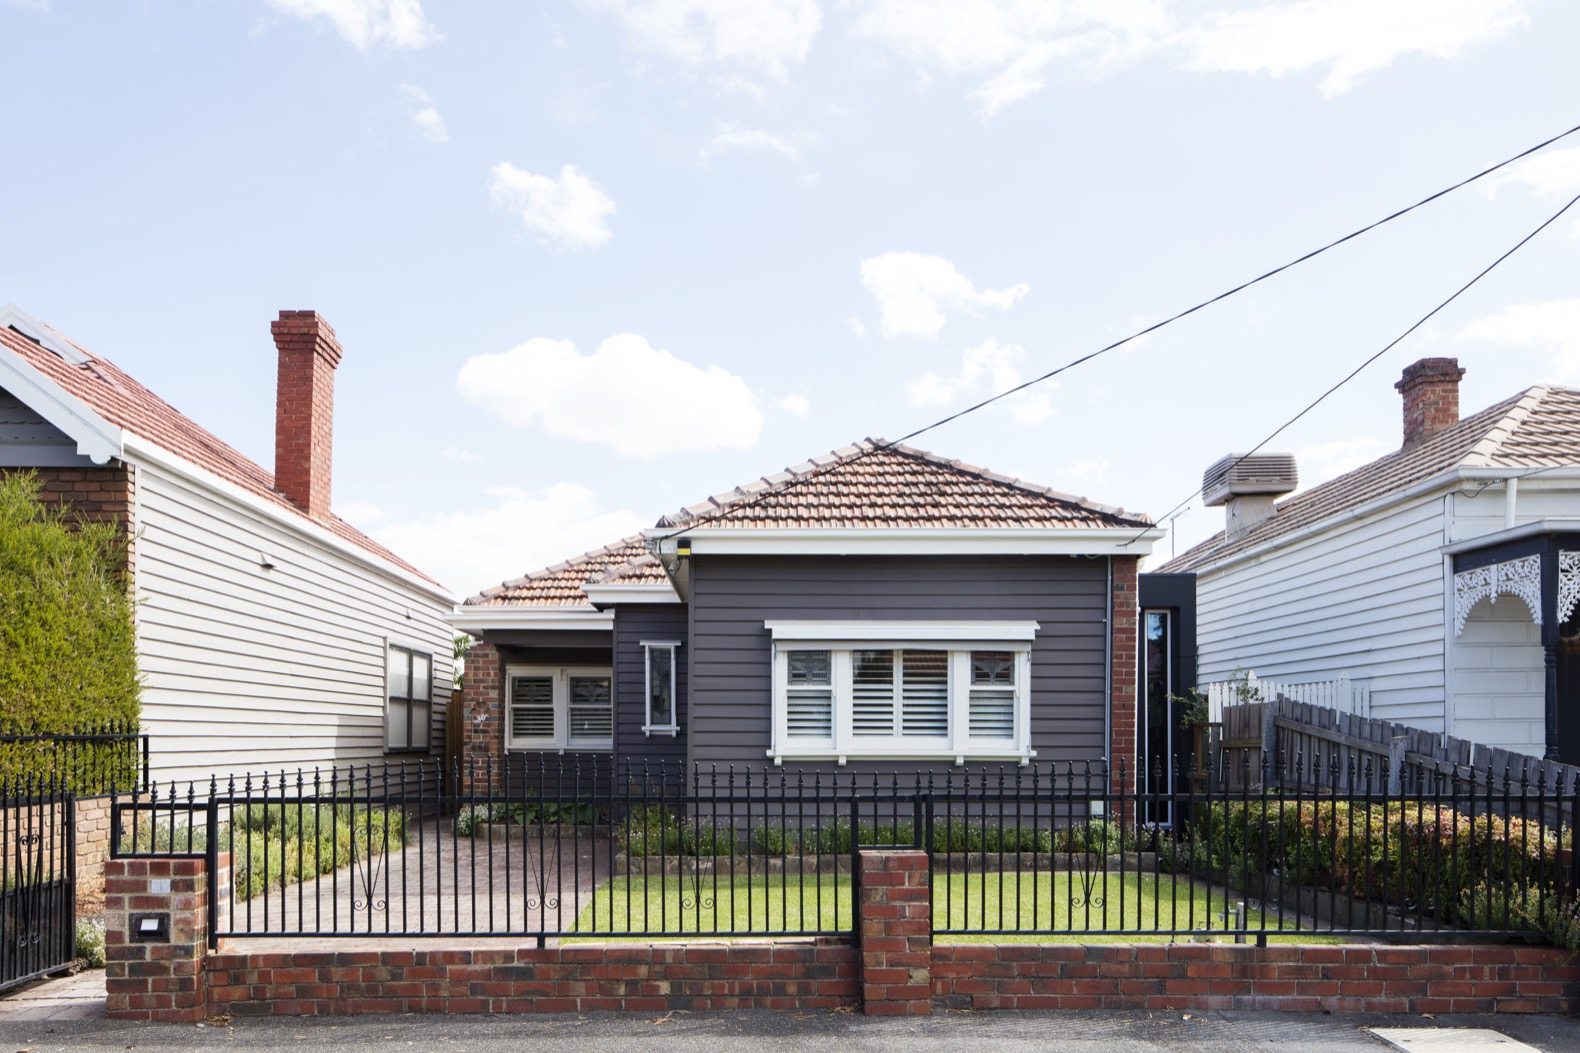 A Melbourne worker's cottage gets revamped into a solar-powered family home